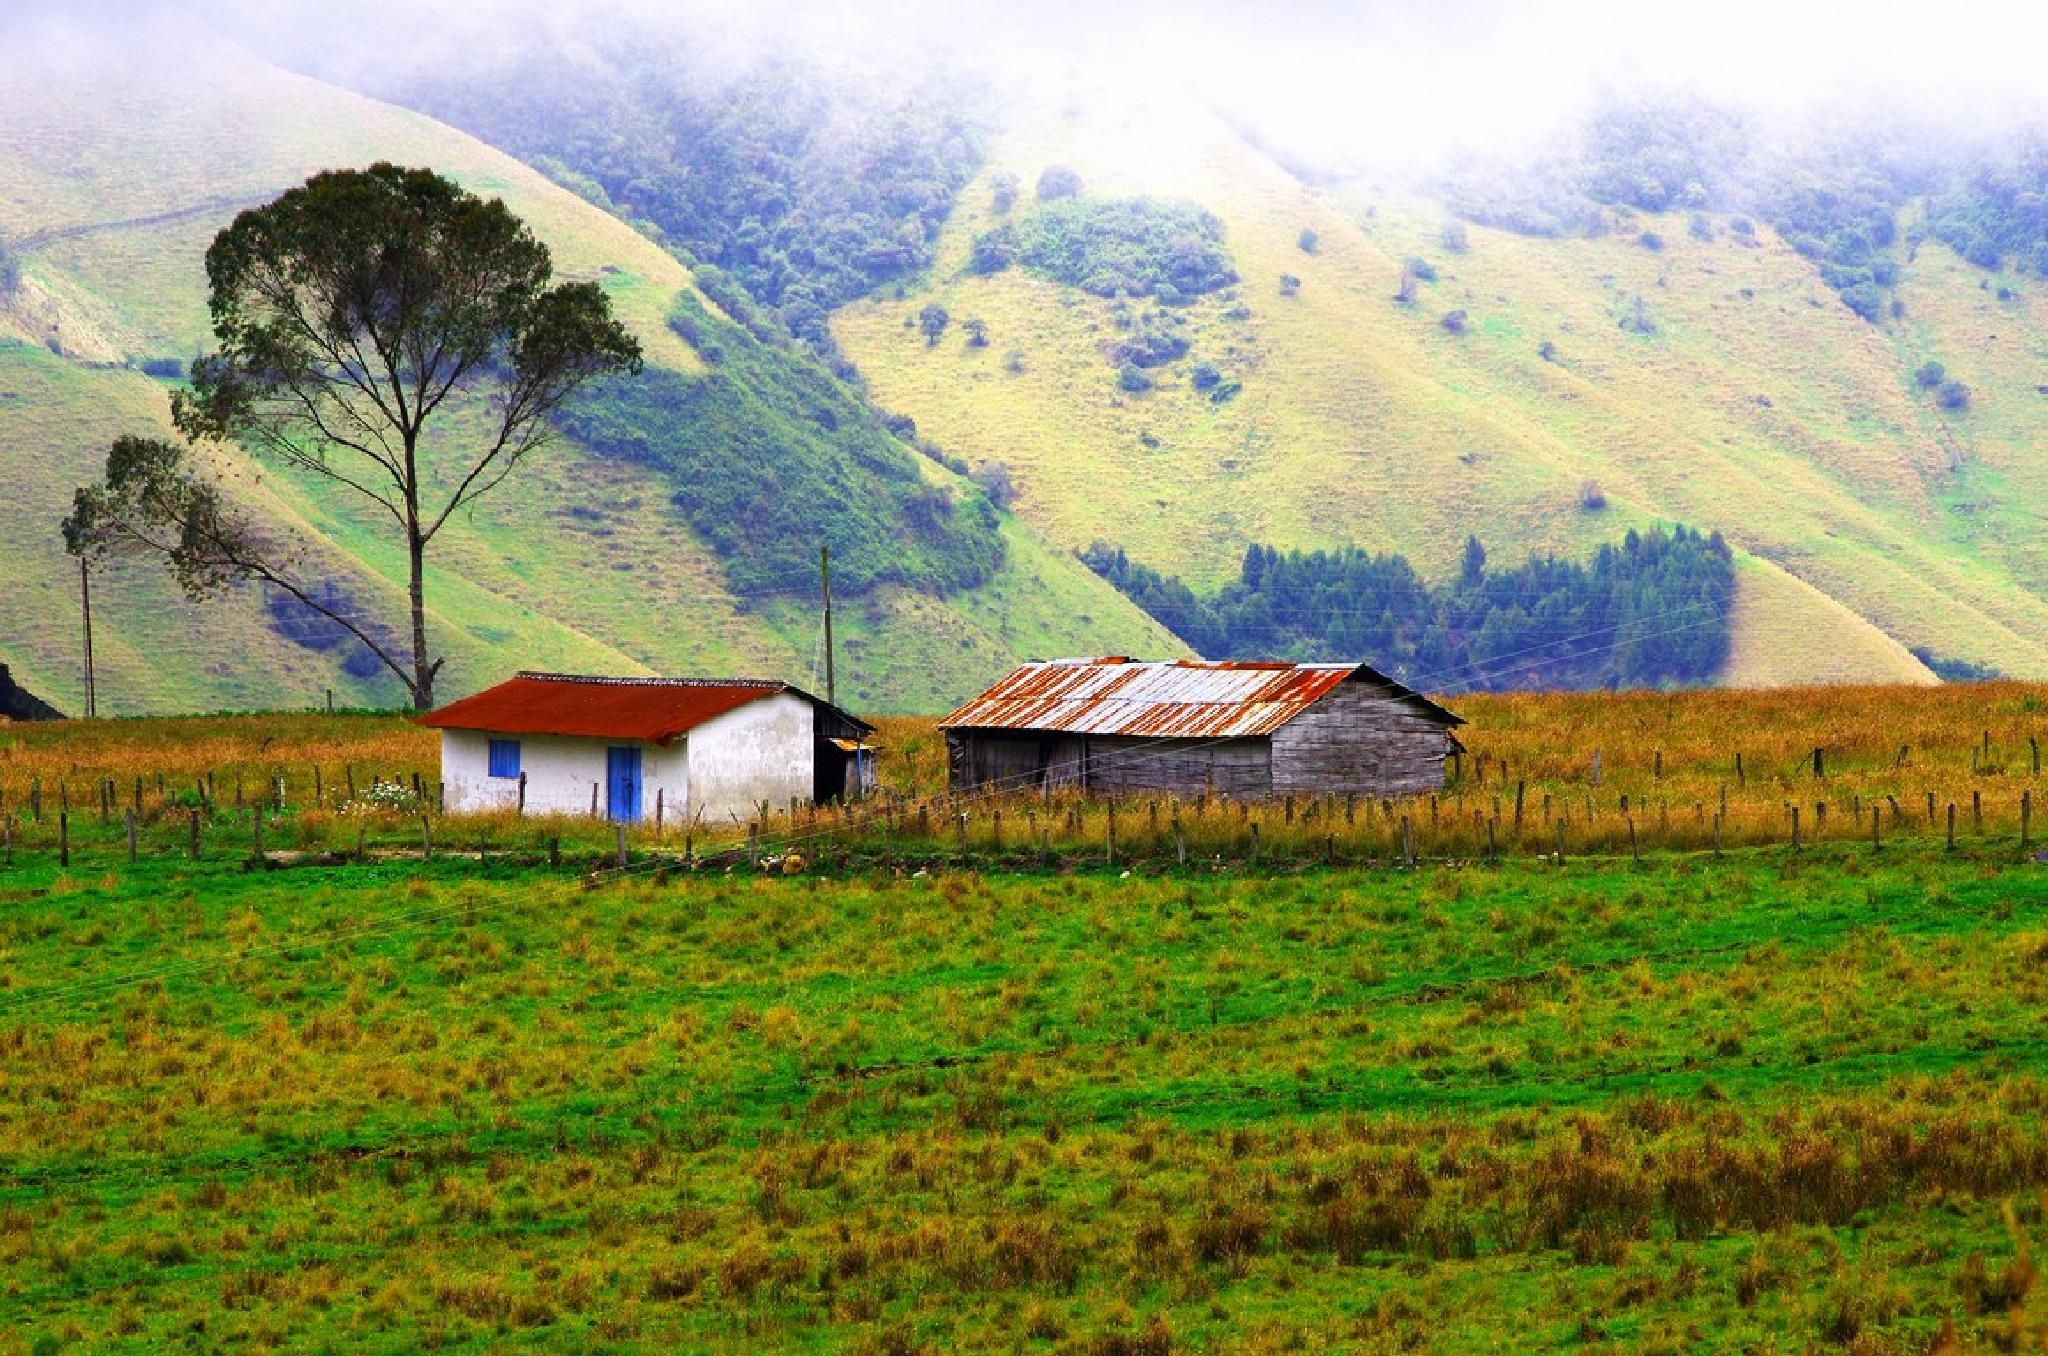 Little farmhouse in the Andes by Dan Steeves